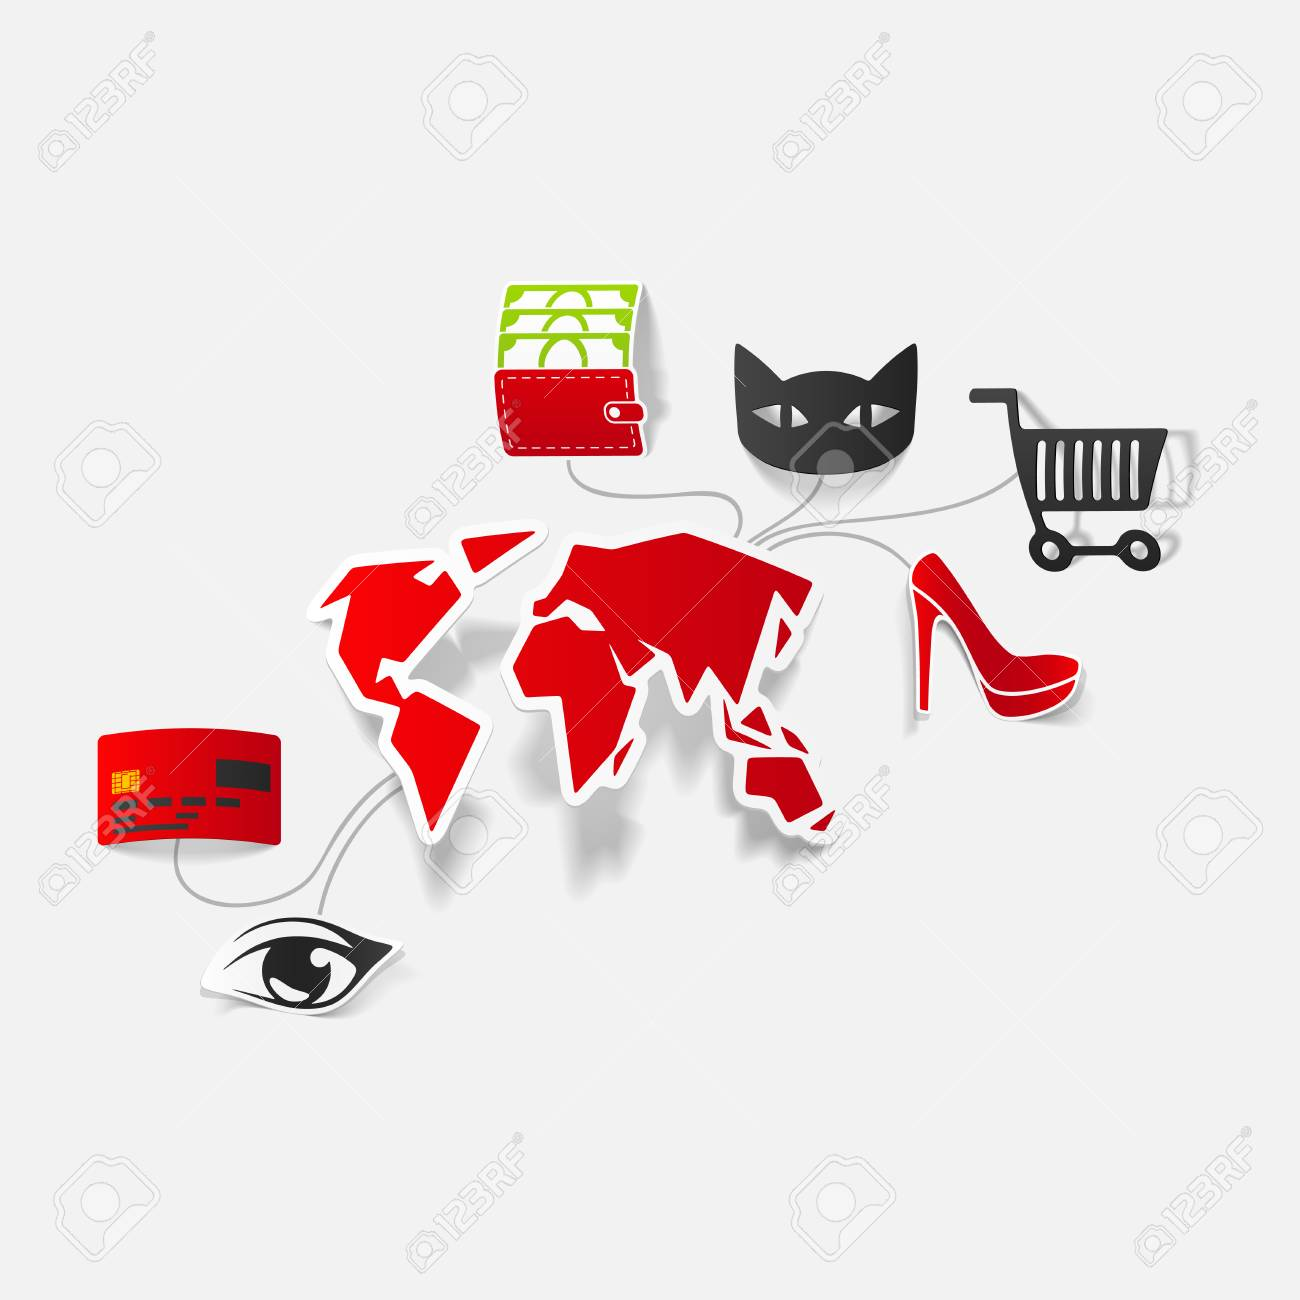 Set of sticker design online shopping concept stock vector 29819462